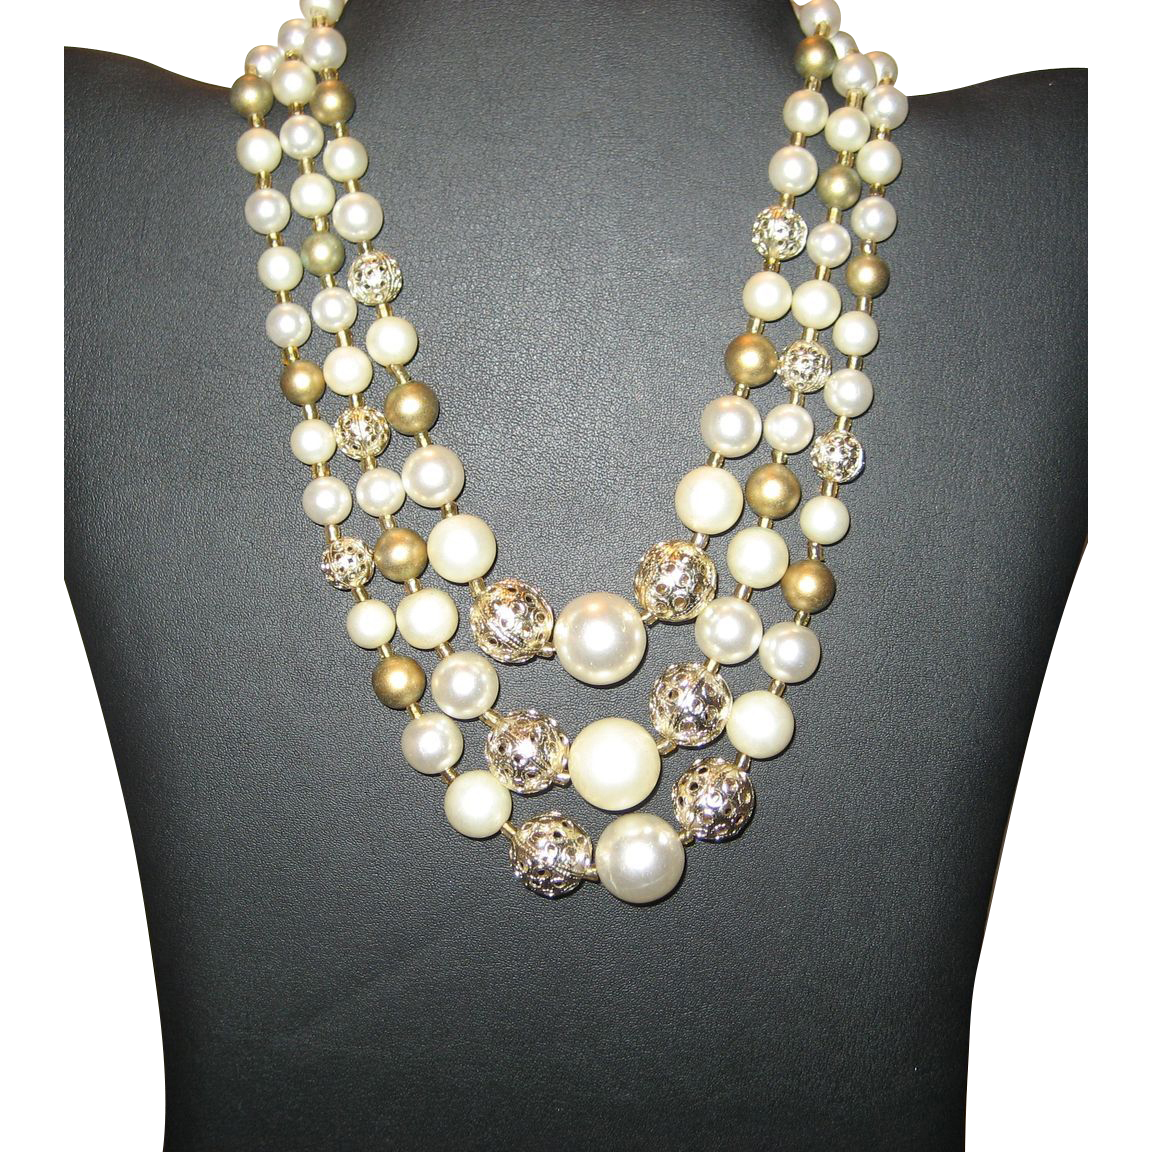 Lovely Beaded 3-Strand Necklace - Japan